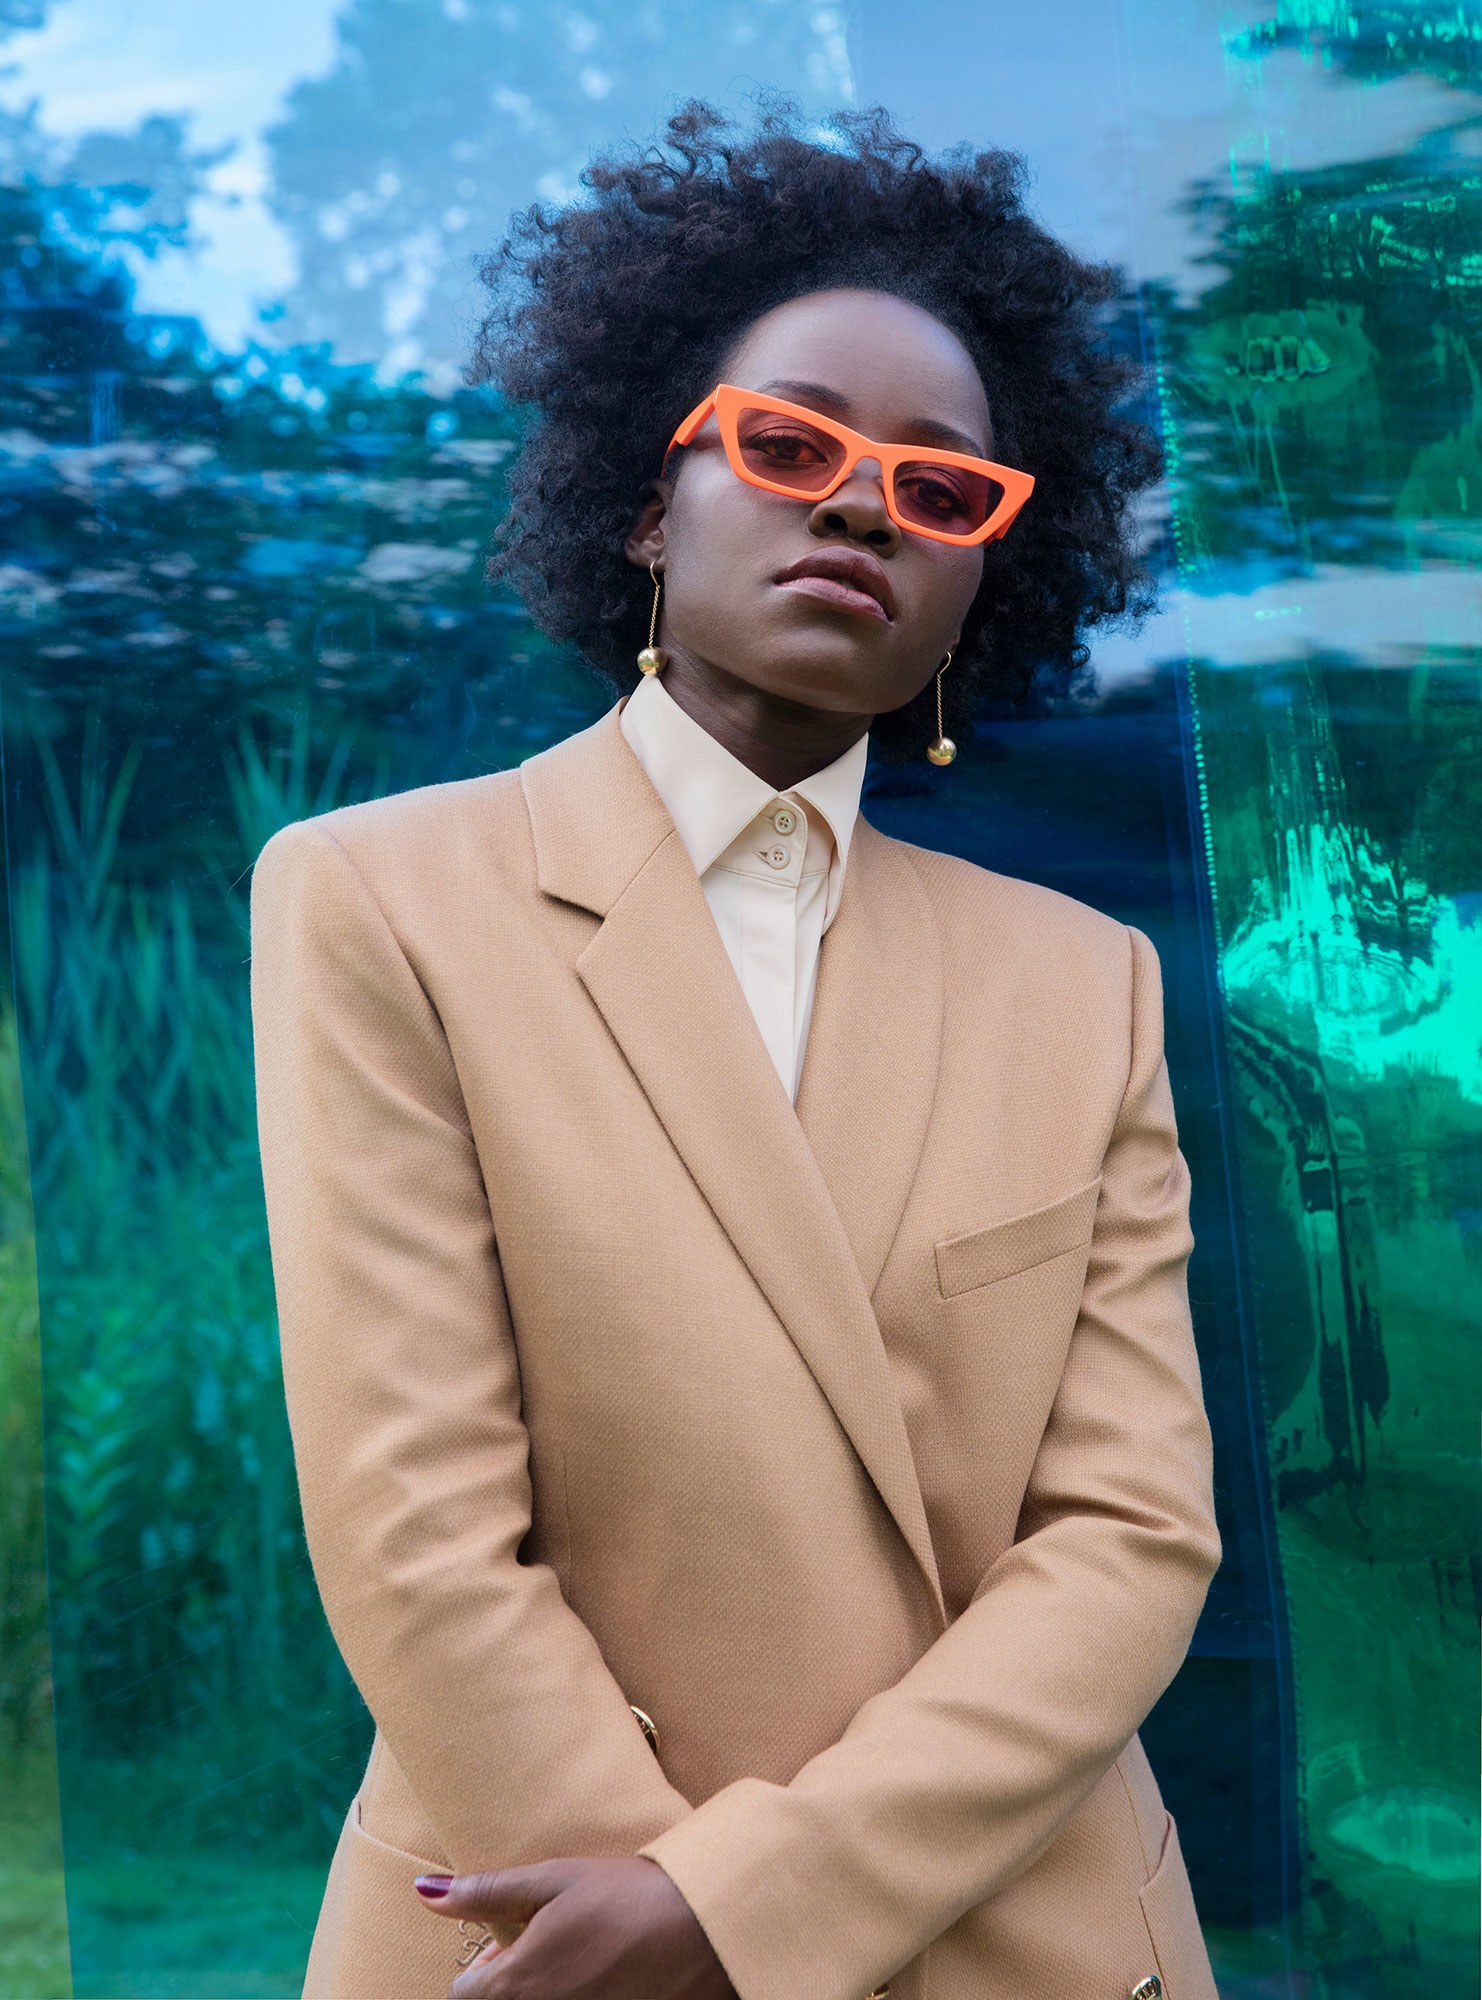 Clothing by Fendi; earrings by Tiffany & Co.; sunglasses by Gentle Monster. LUPITA NYONG'o. PHOTOGRAPH BY JACKIE NICKERSON; STYLED BY SAMIRA NASR.